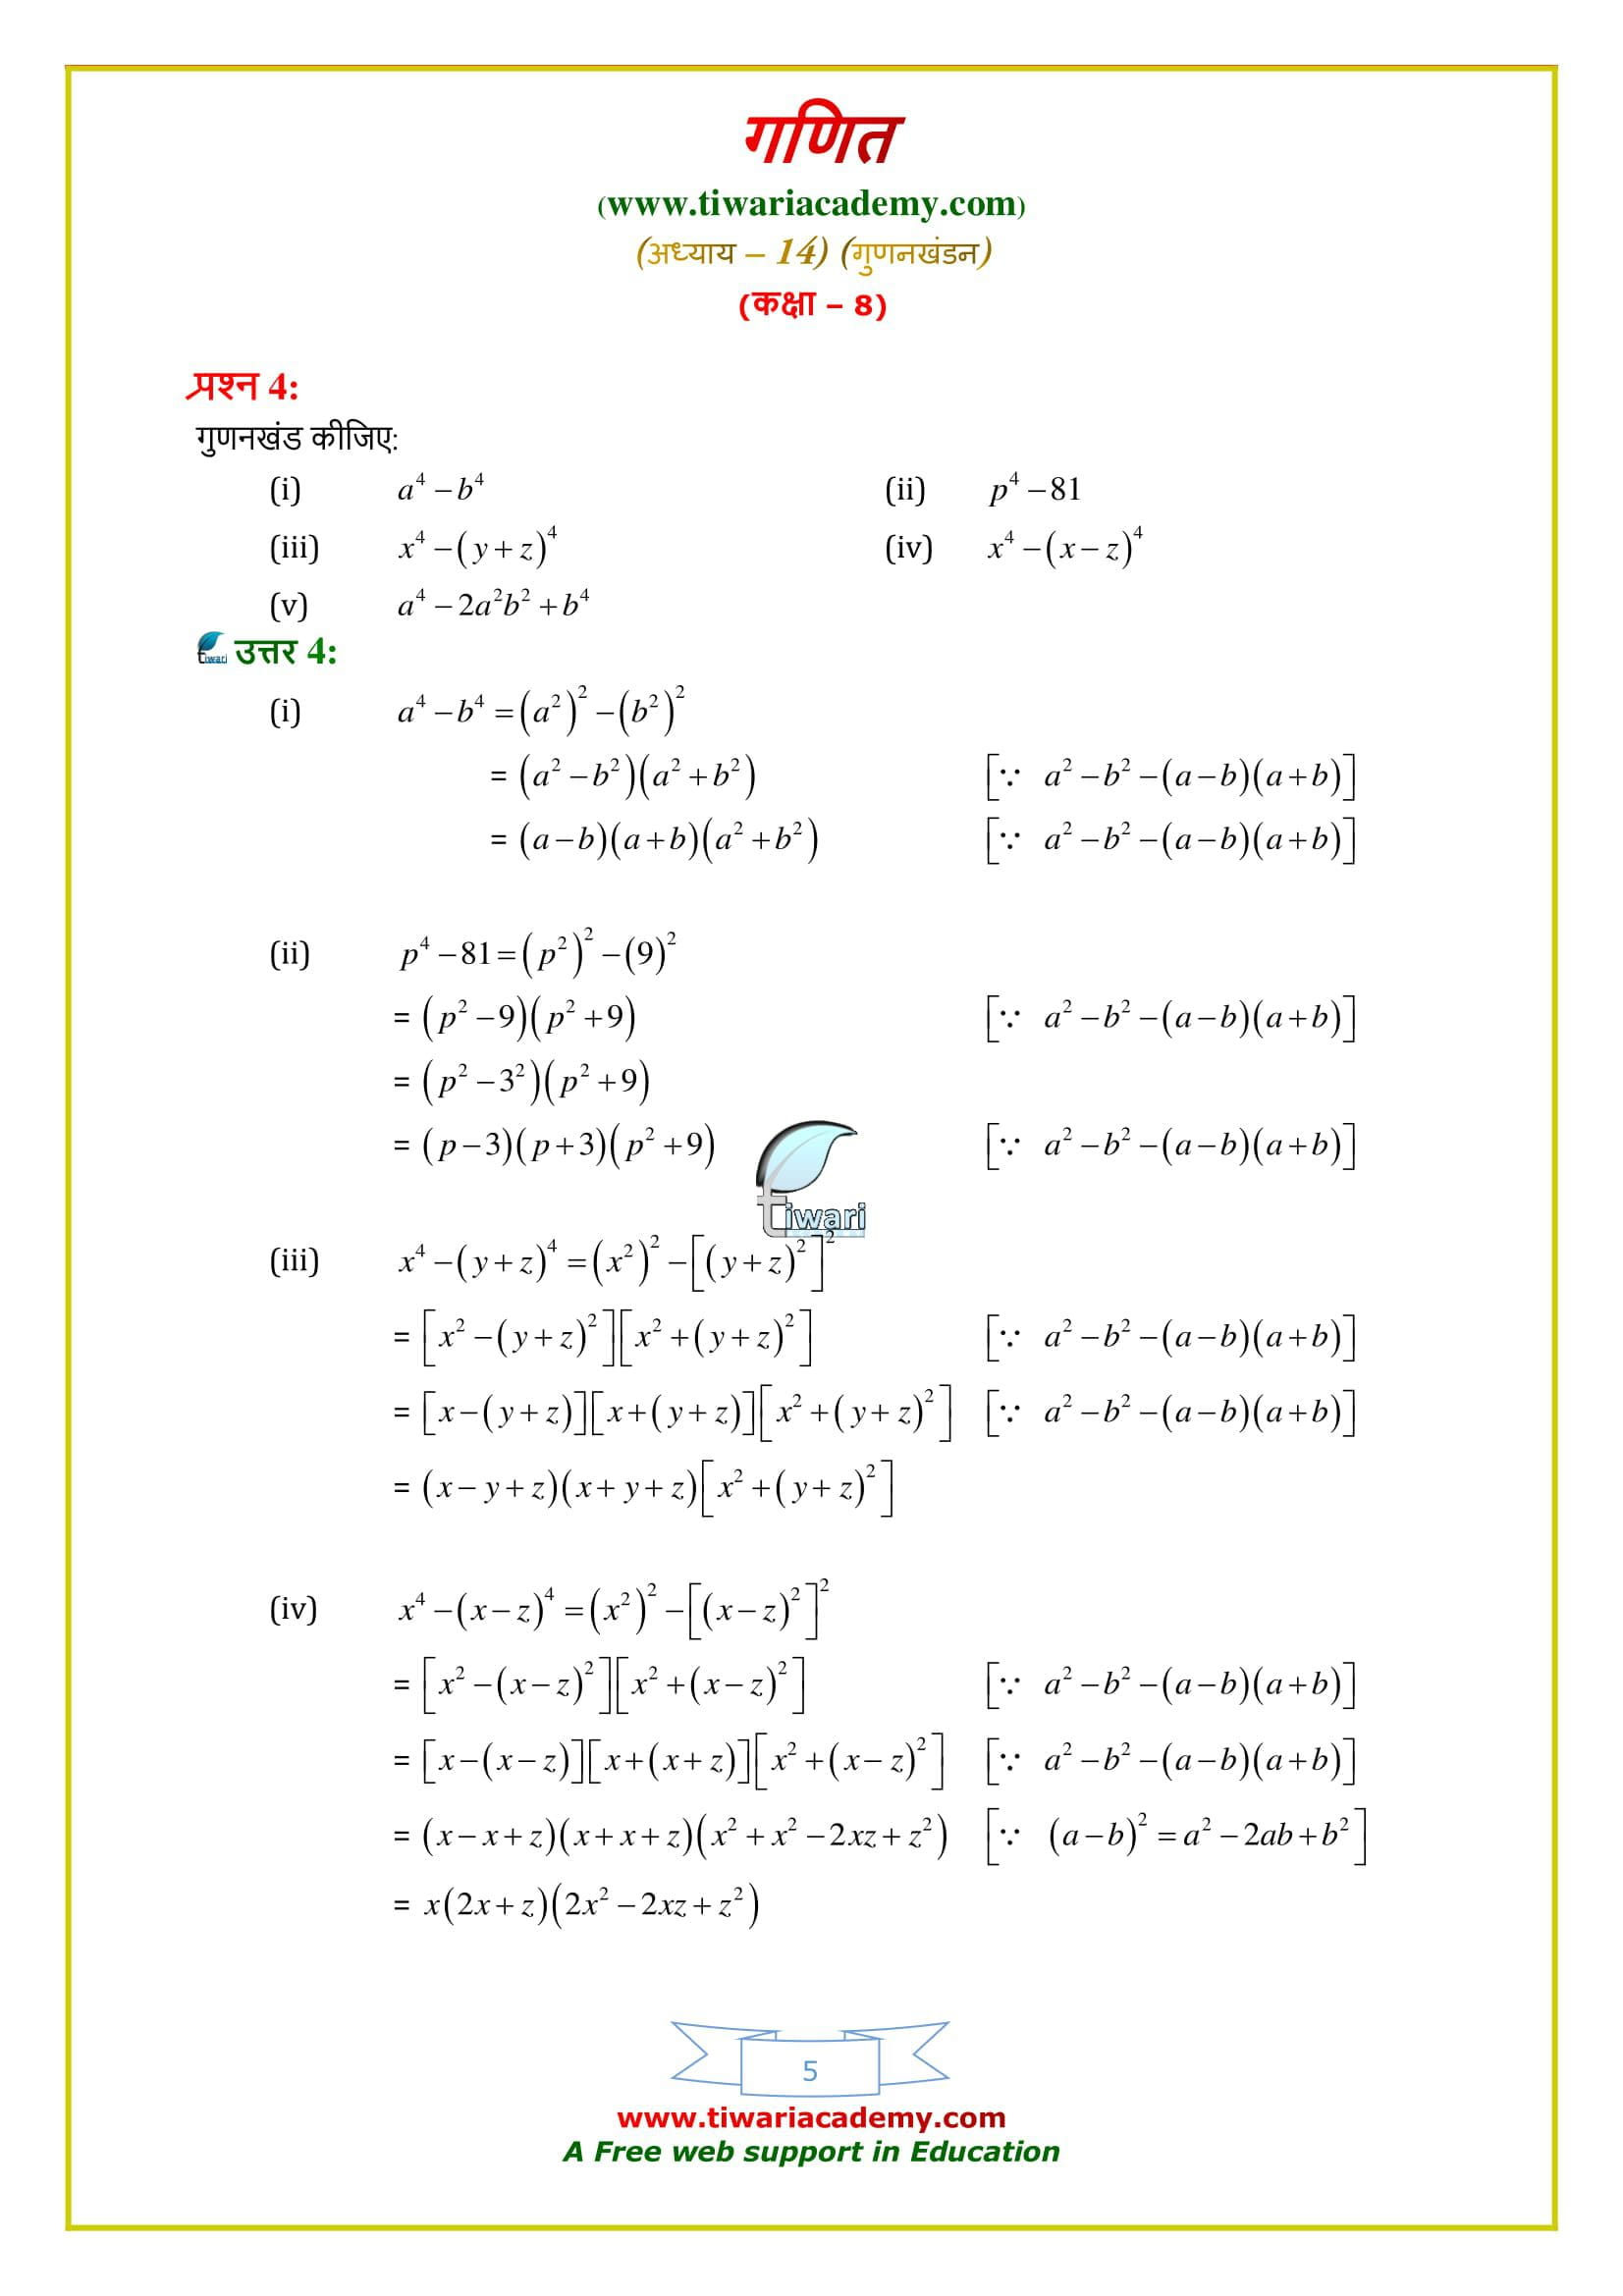 8 Maths Exercise 14.2 solutions free to use and download